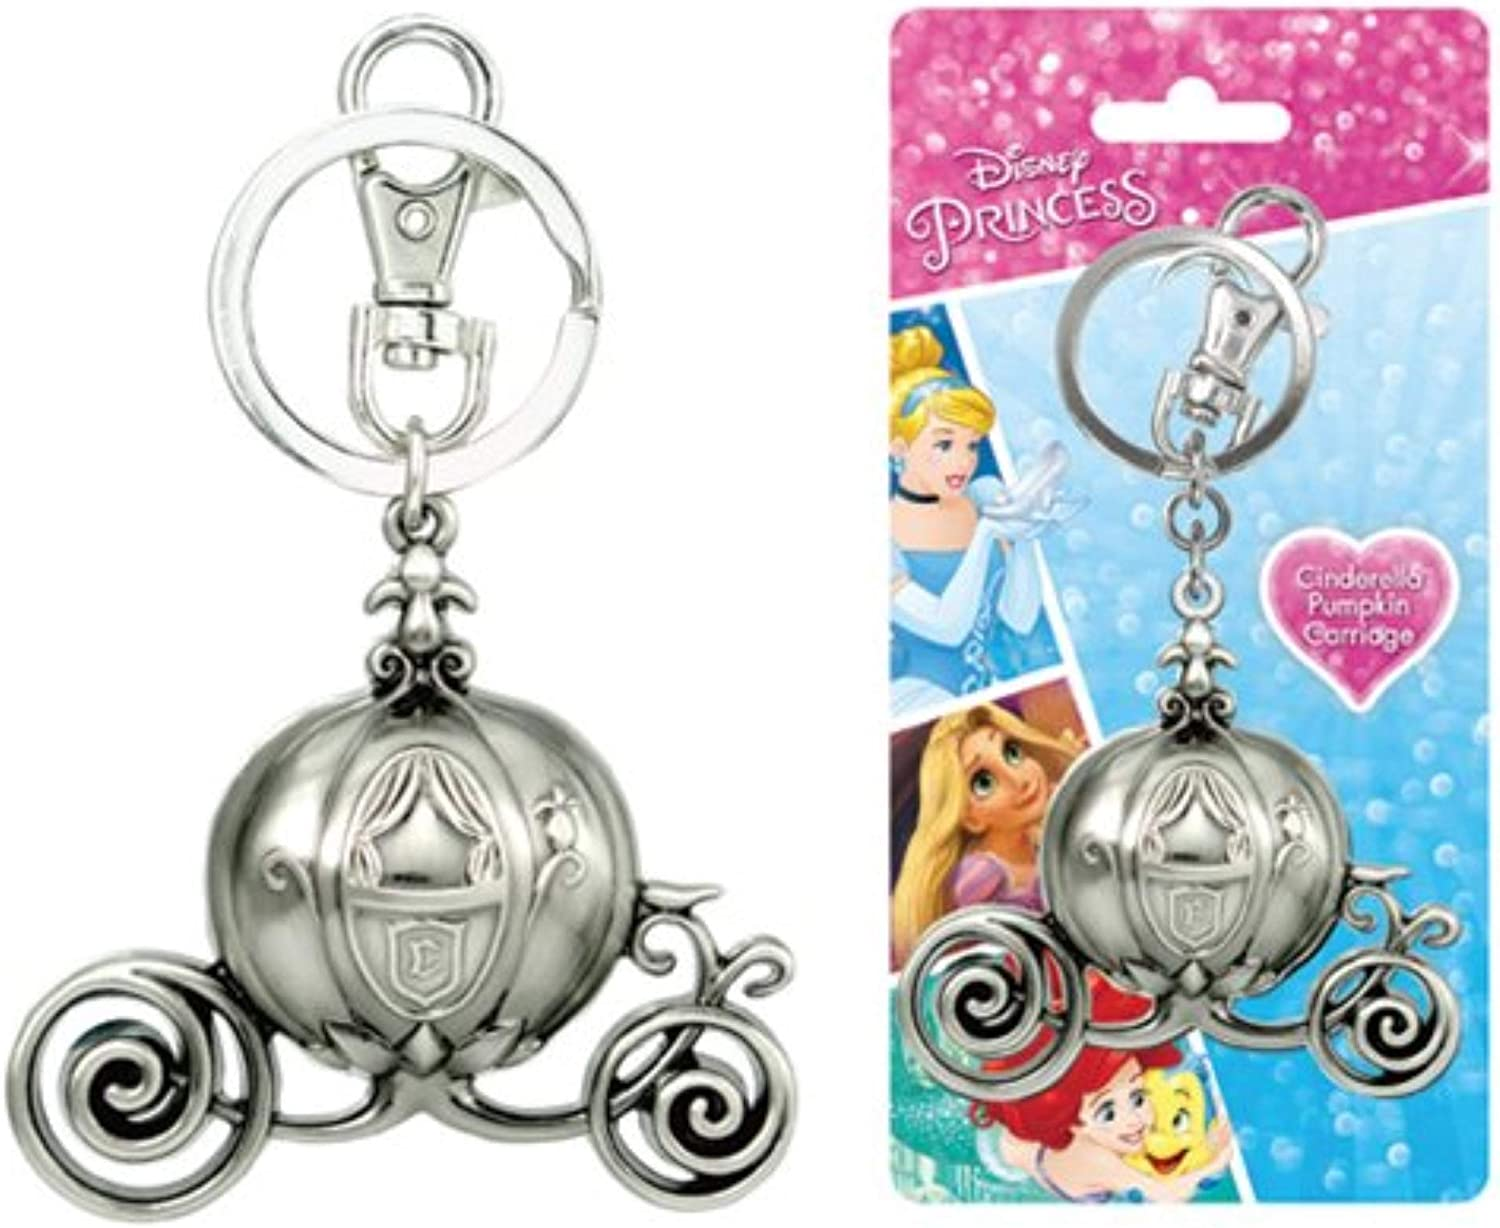 Disney Cinderella Carriage Pewter Key Ring Collectible Multi-colored, 3